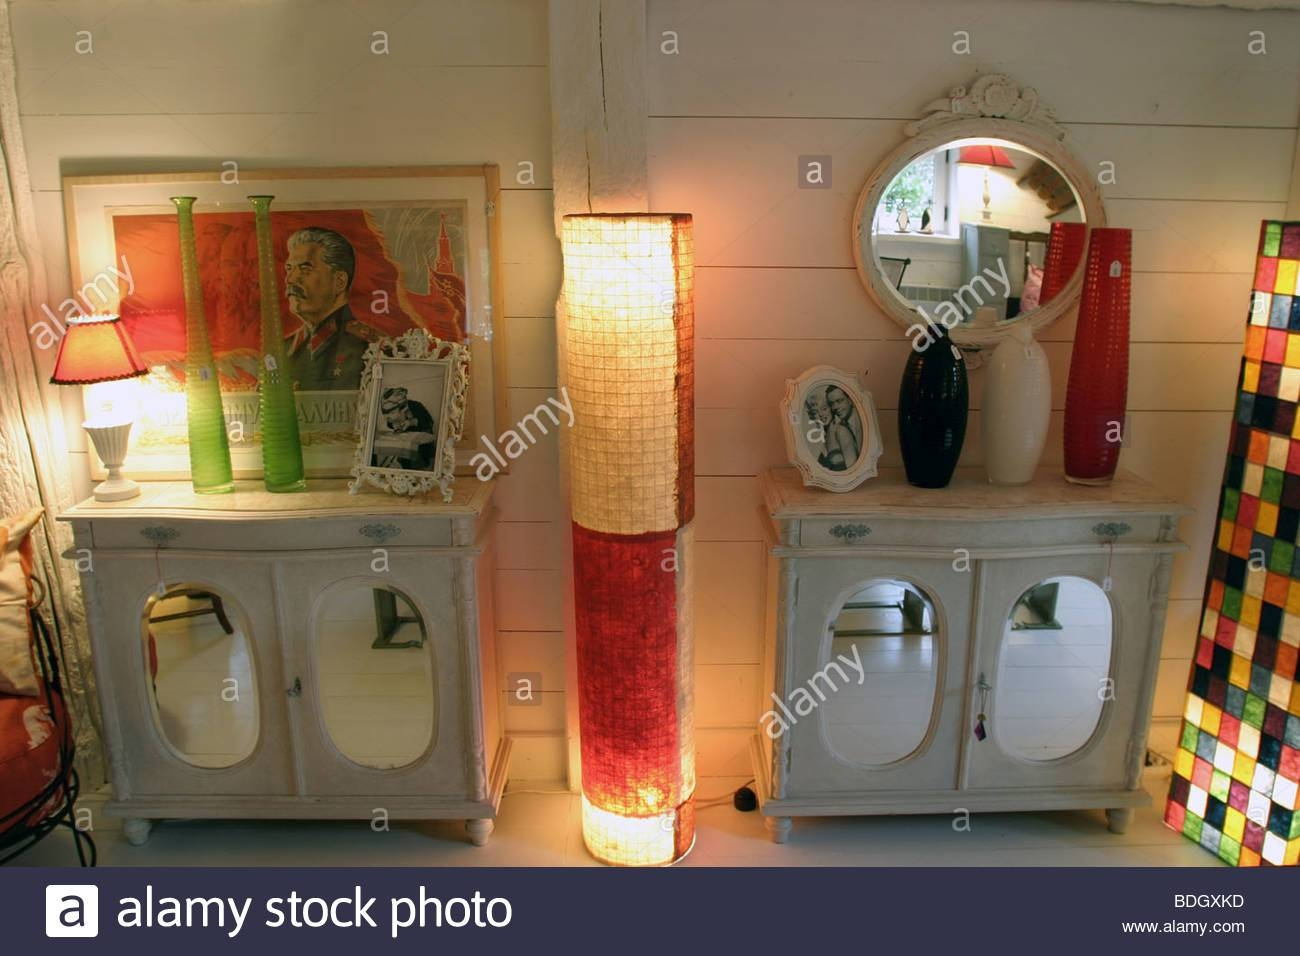 Sideboards Lamps Stock Photo, Royalty Free Image: 25573057 - Alamy within Sideboards With Lamps (Image 12 of 30)